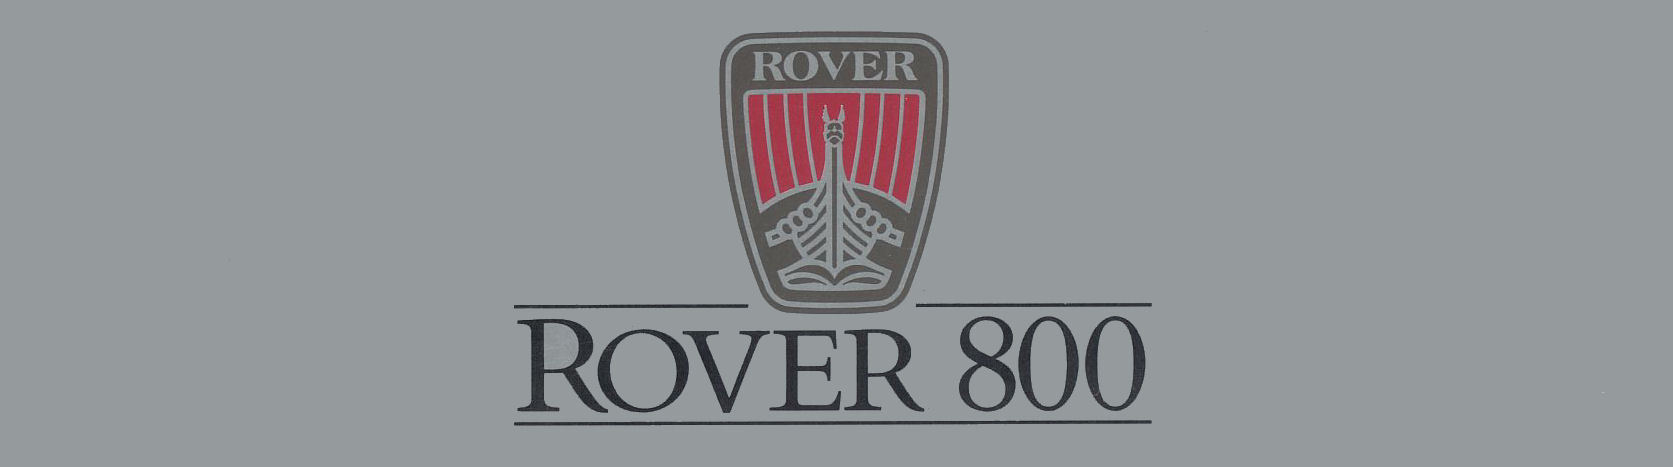 The Rover 800 Series